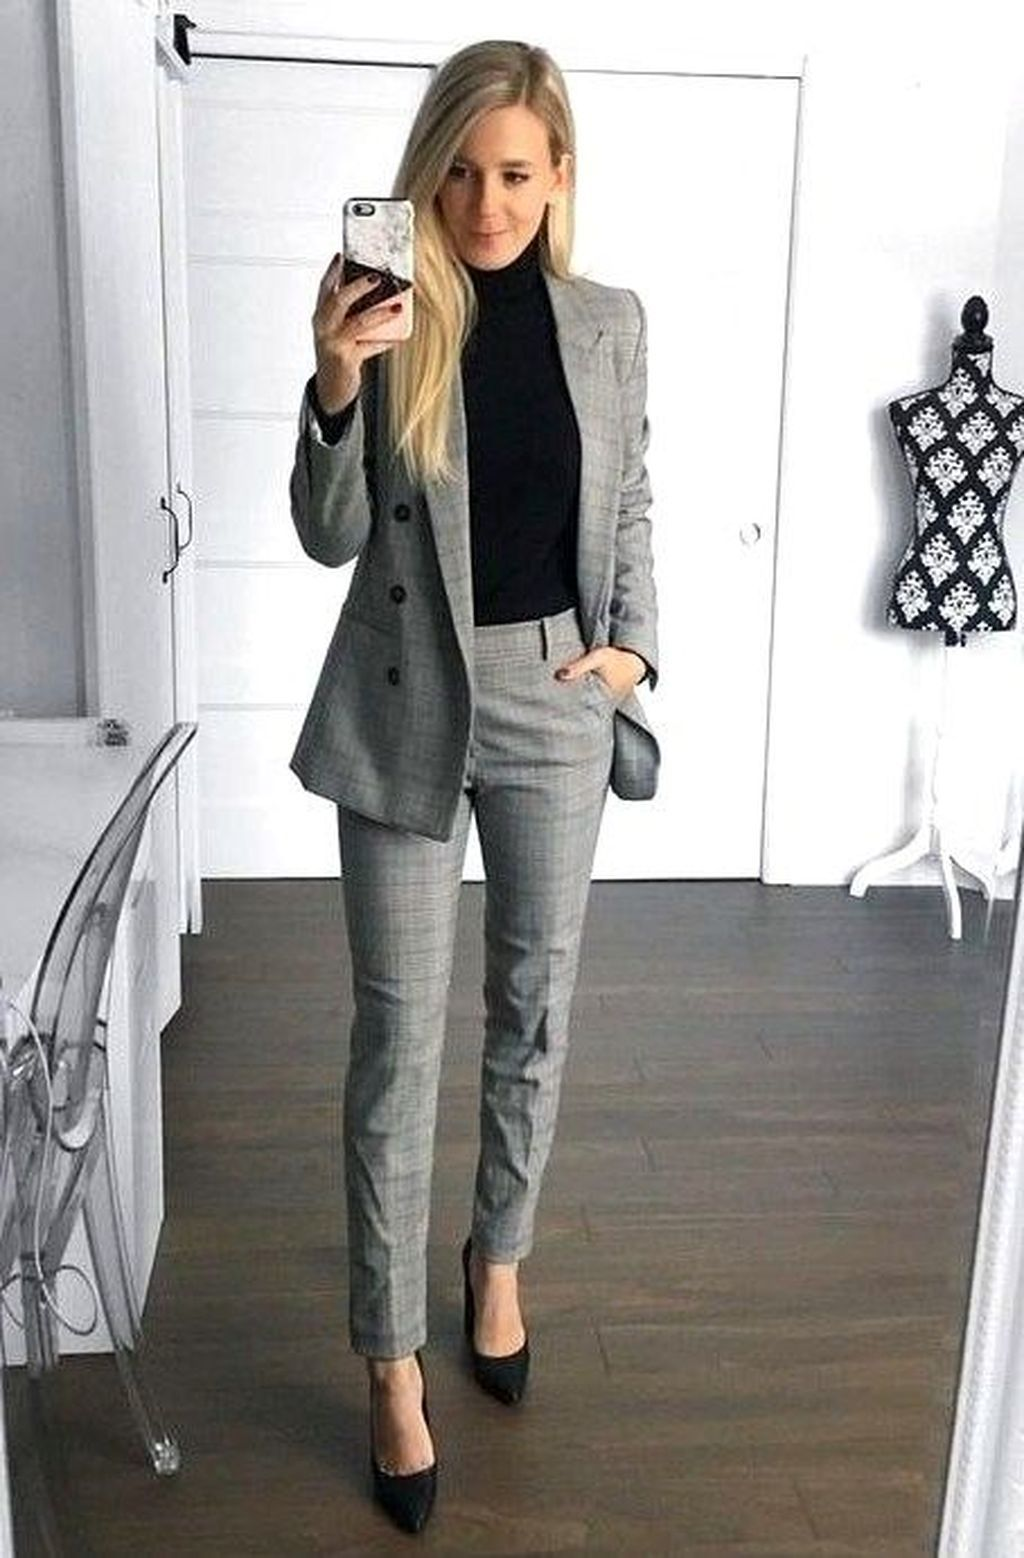 39 Professional Work Outfits For Women Ideas #businessprofessionaloutfits